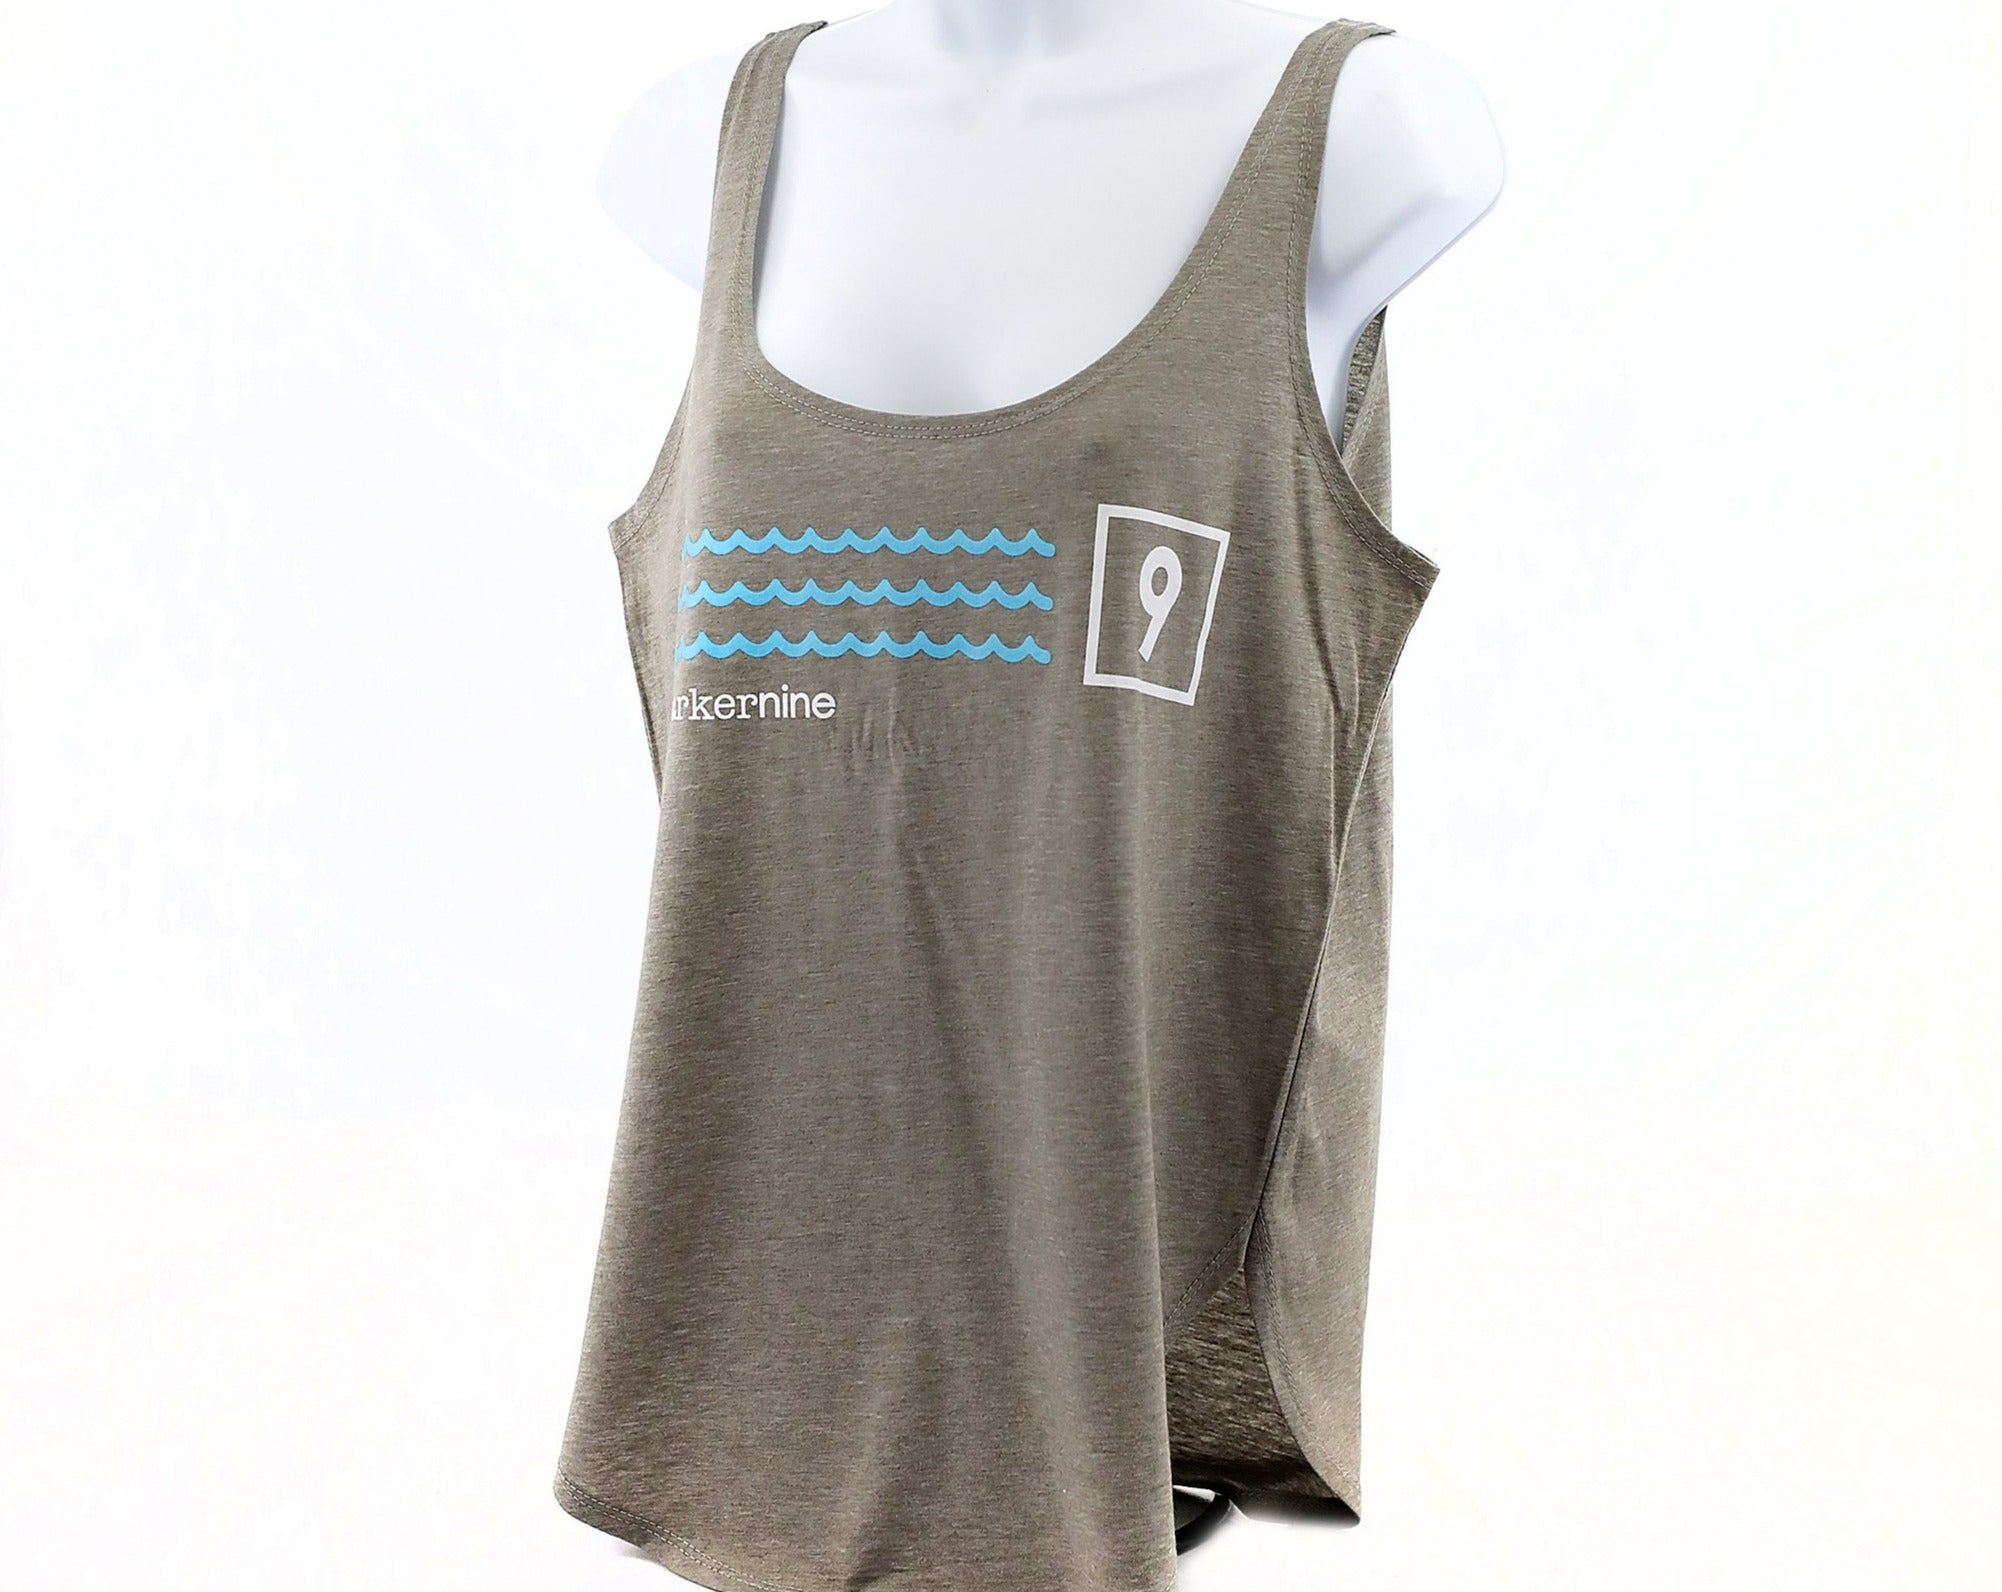 Making Waves Women's Festival Tank